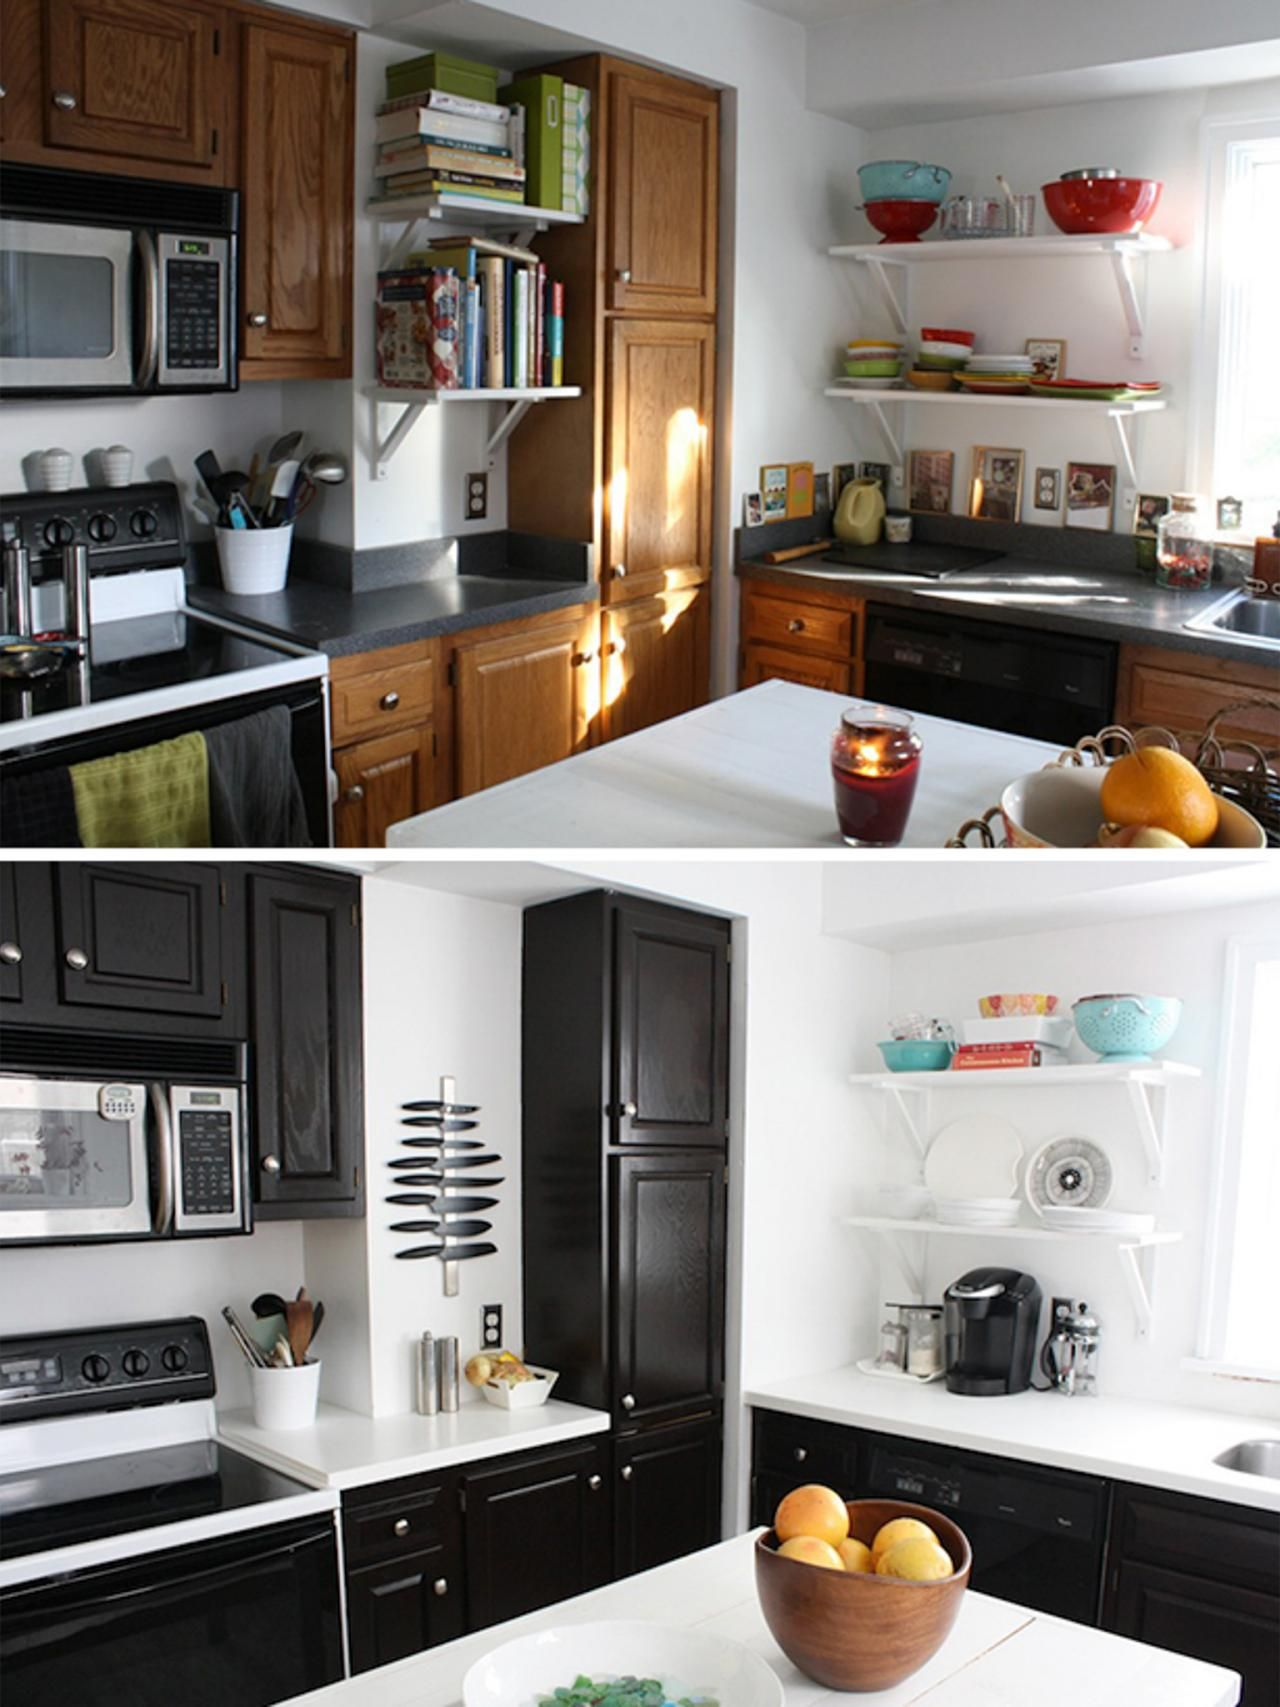 How to Use Gel Stain to Spruce Up Cabinets, Lamp Bases and ...